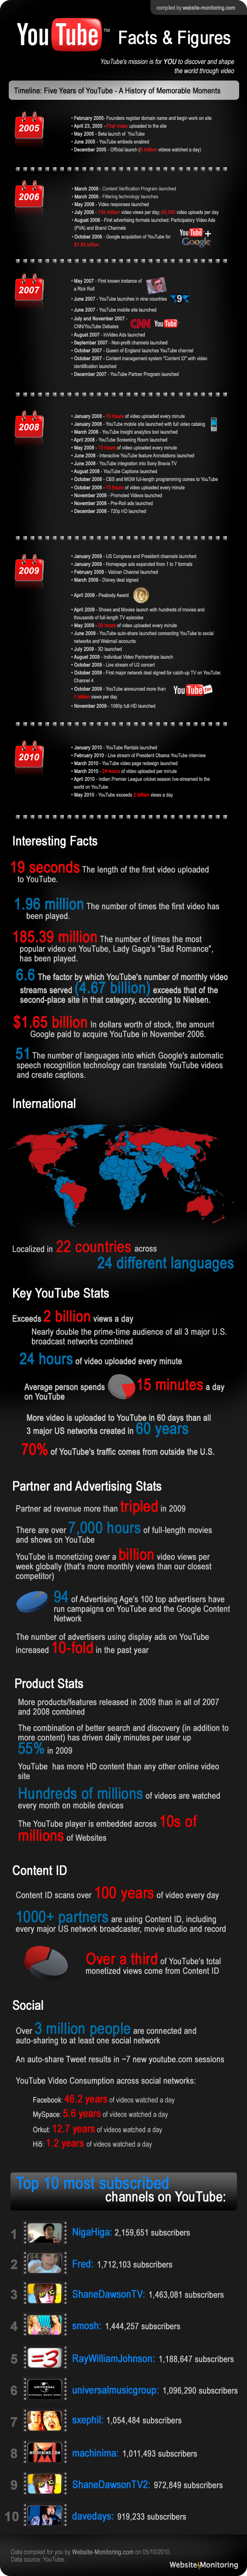 YouTube Facts & Figures